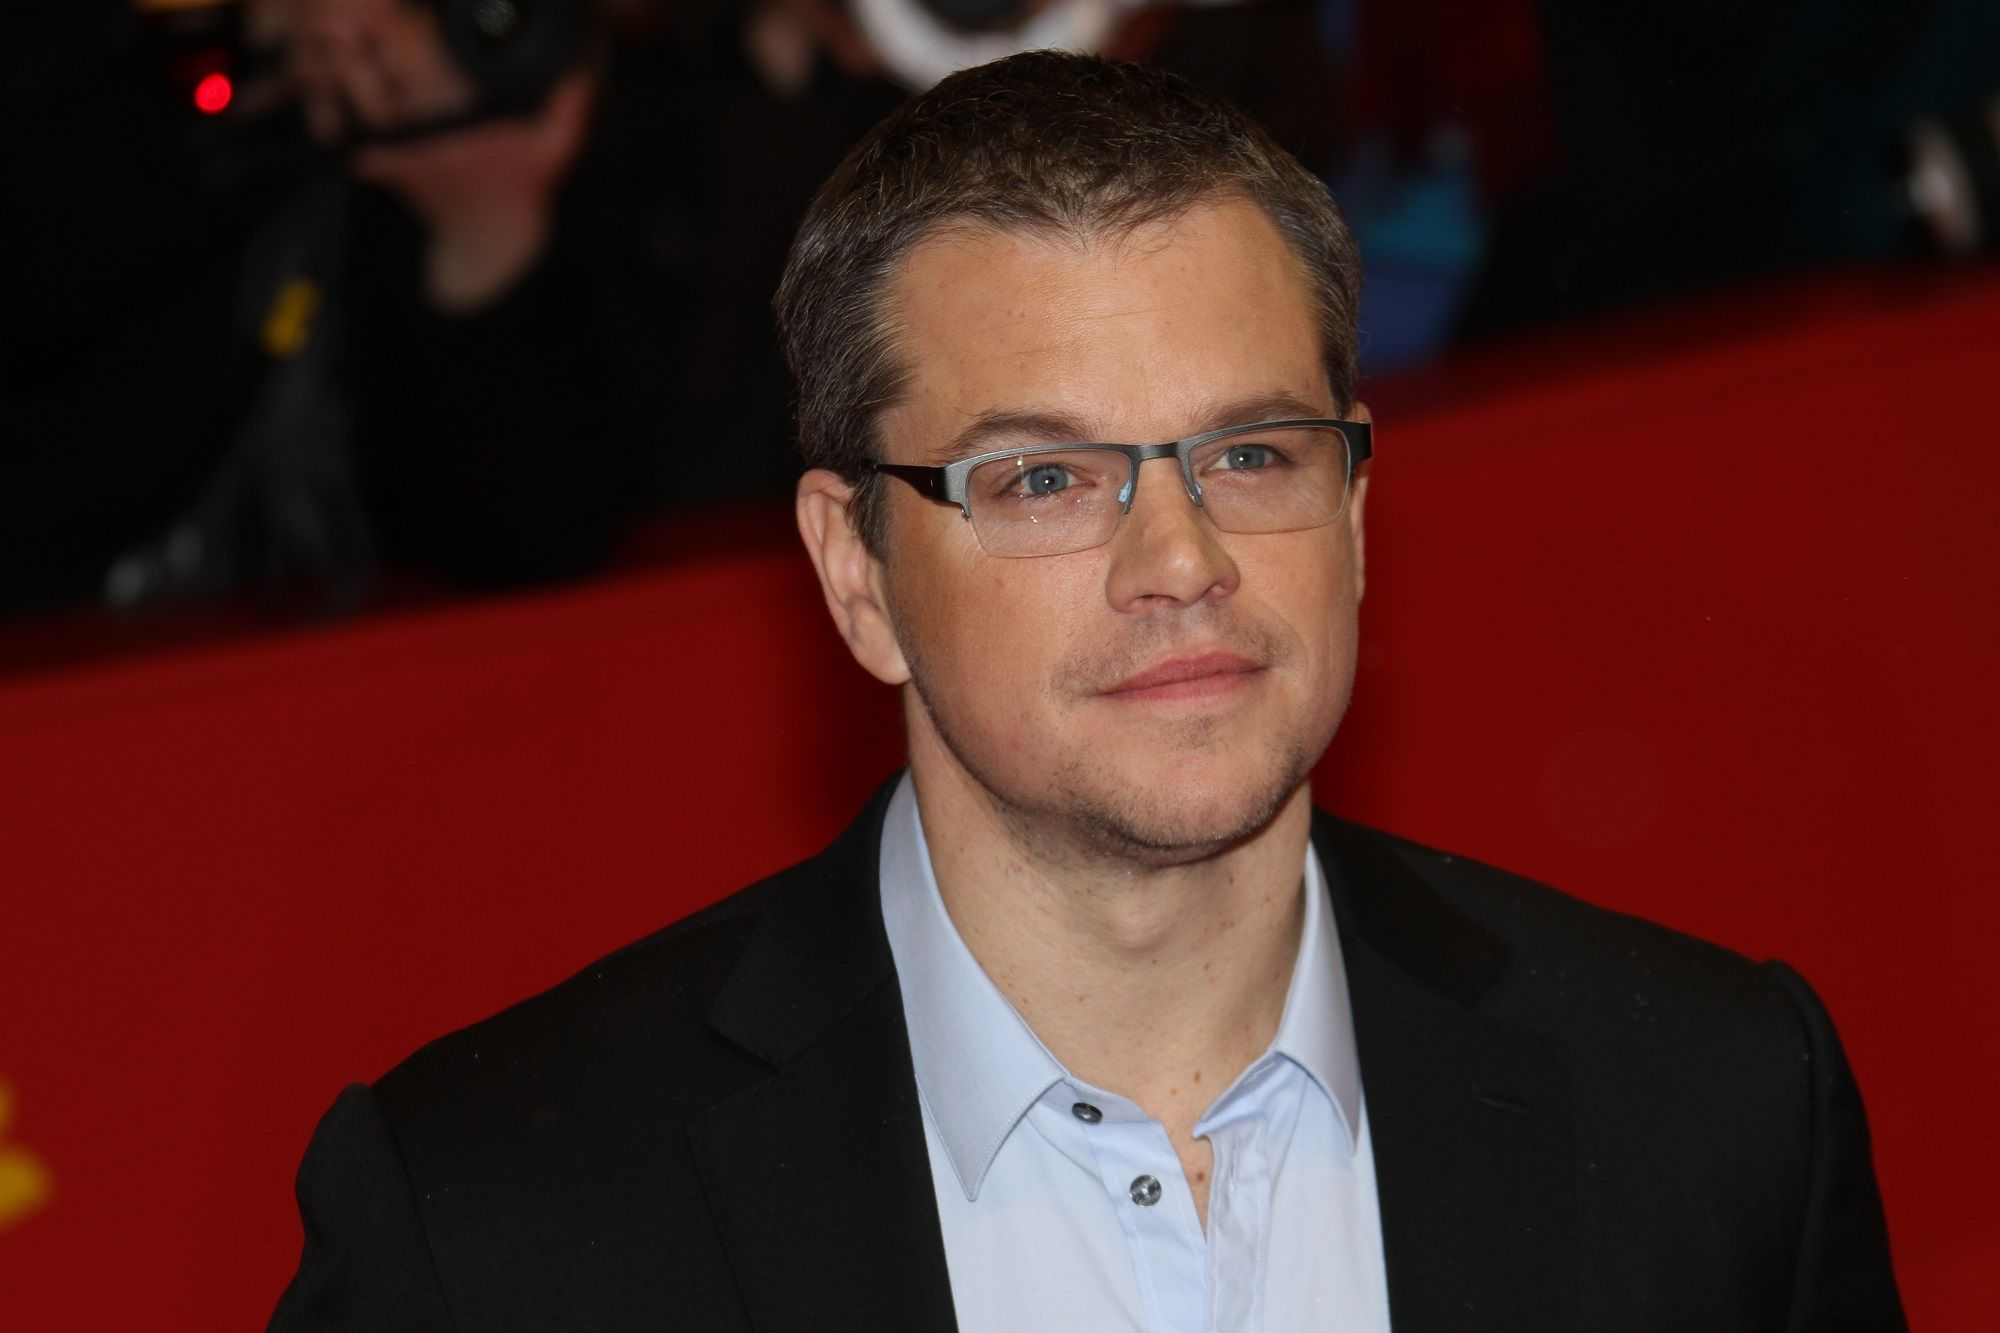 10. Matt Damon